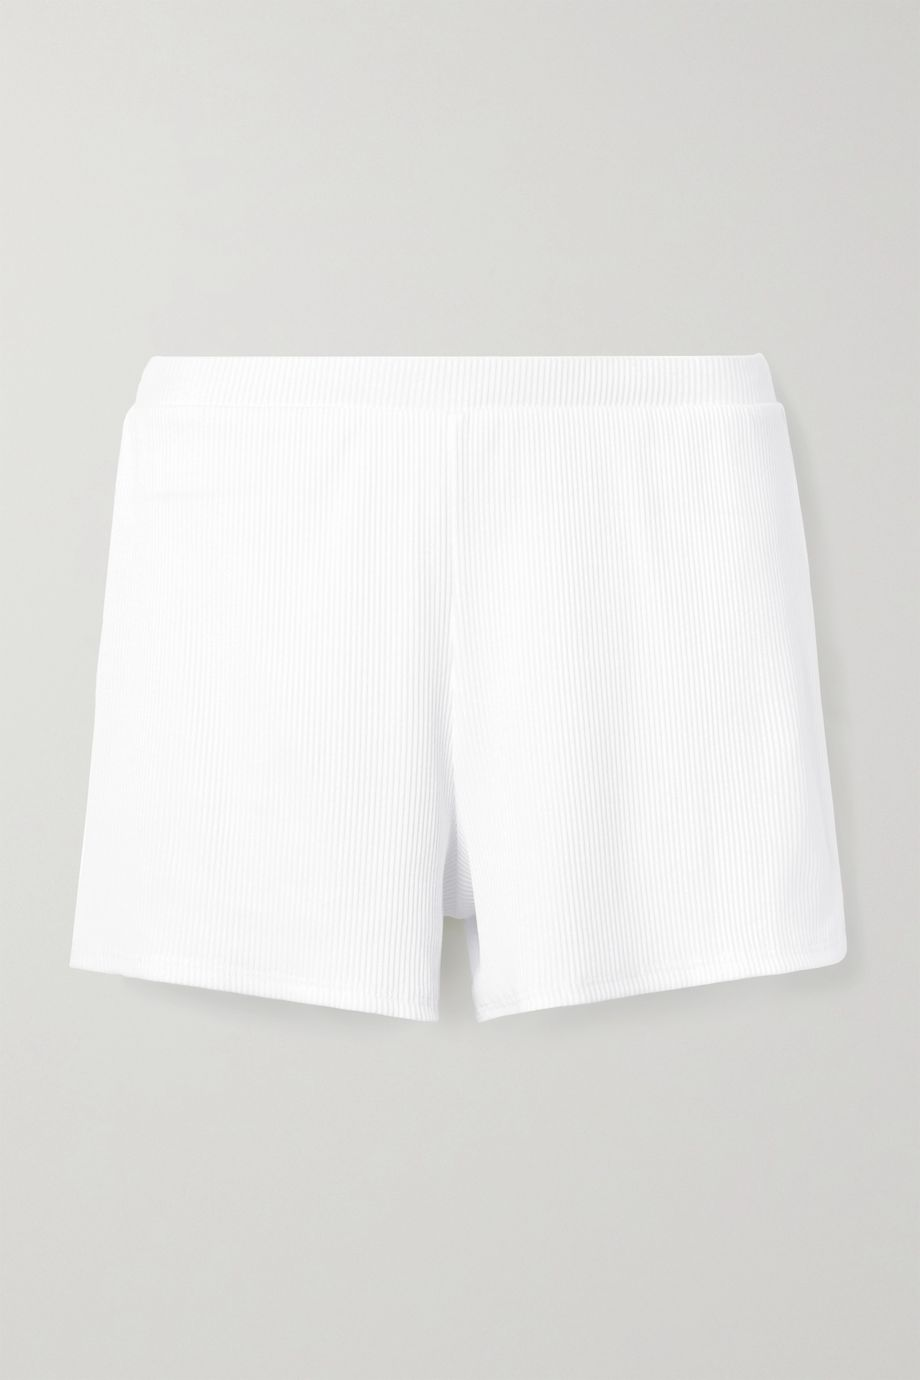 Skin Indigo ribbed stretch-Pima cotton jersey shorts